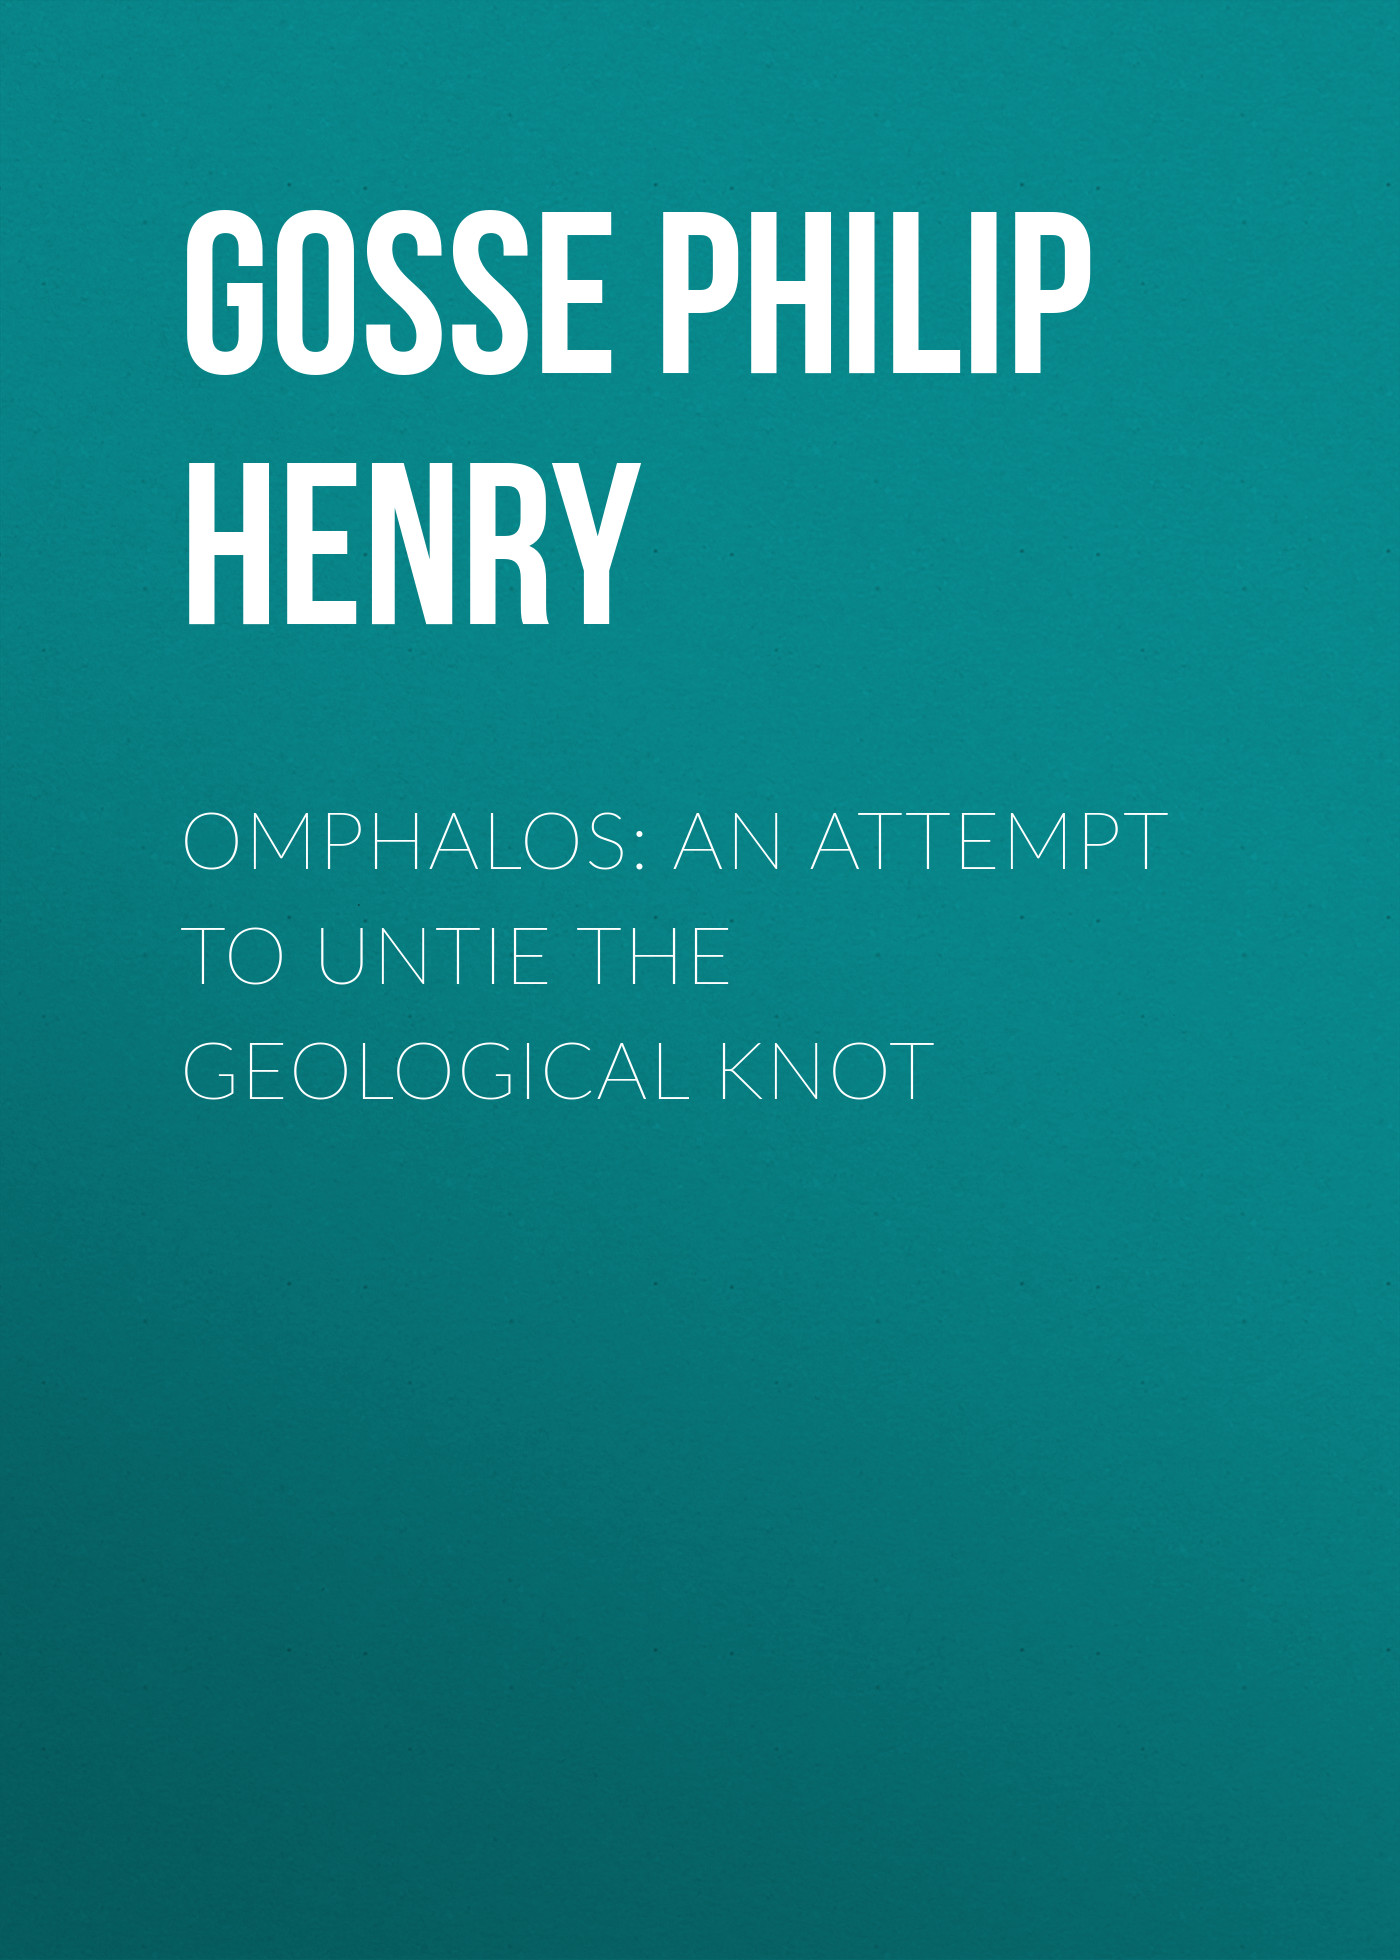 Gosse Philip Henry Omphalos: An Attempt to Untie the Geological Knot henry woodward geological magazine volume 22